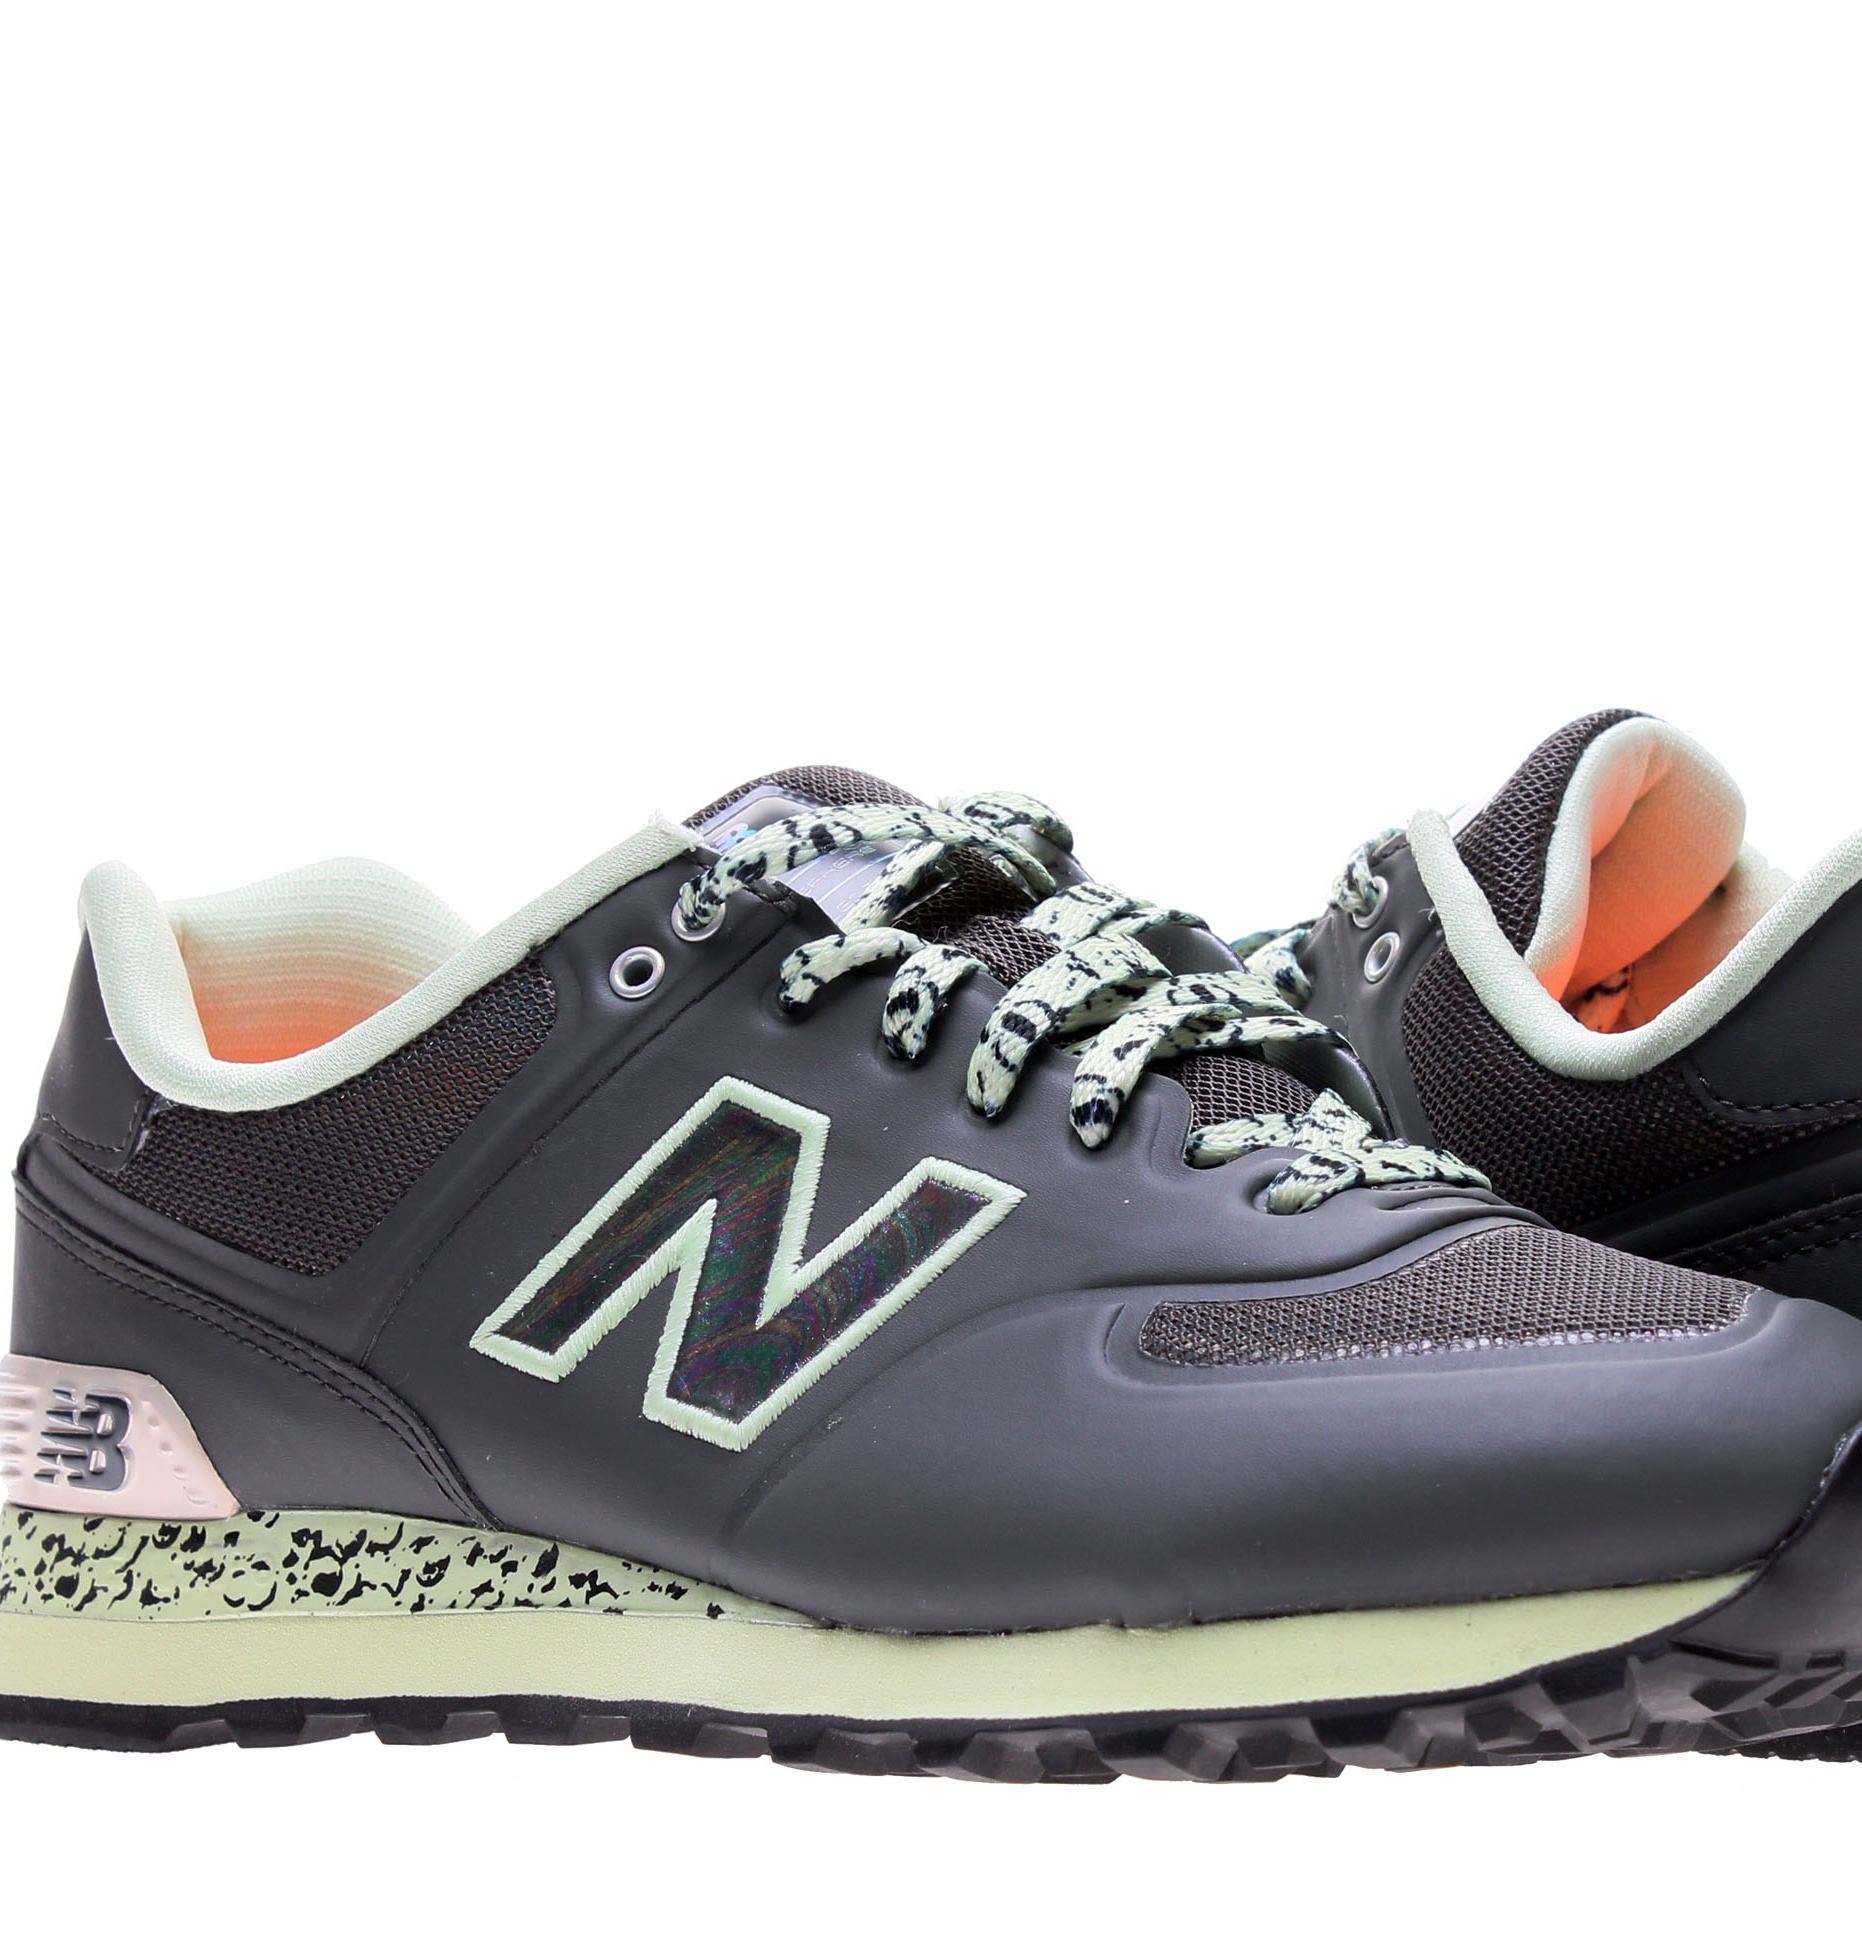 New Balance 574 [Atmosphere] Running Shoes ML5740BK Size 11 by New Balance